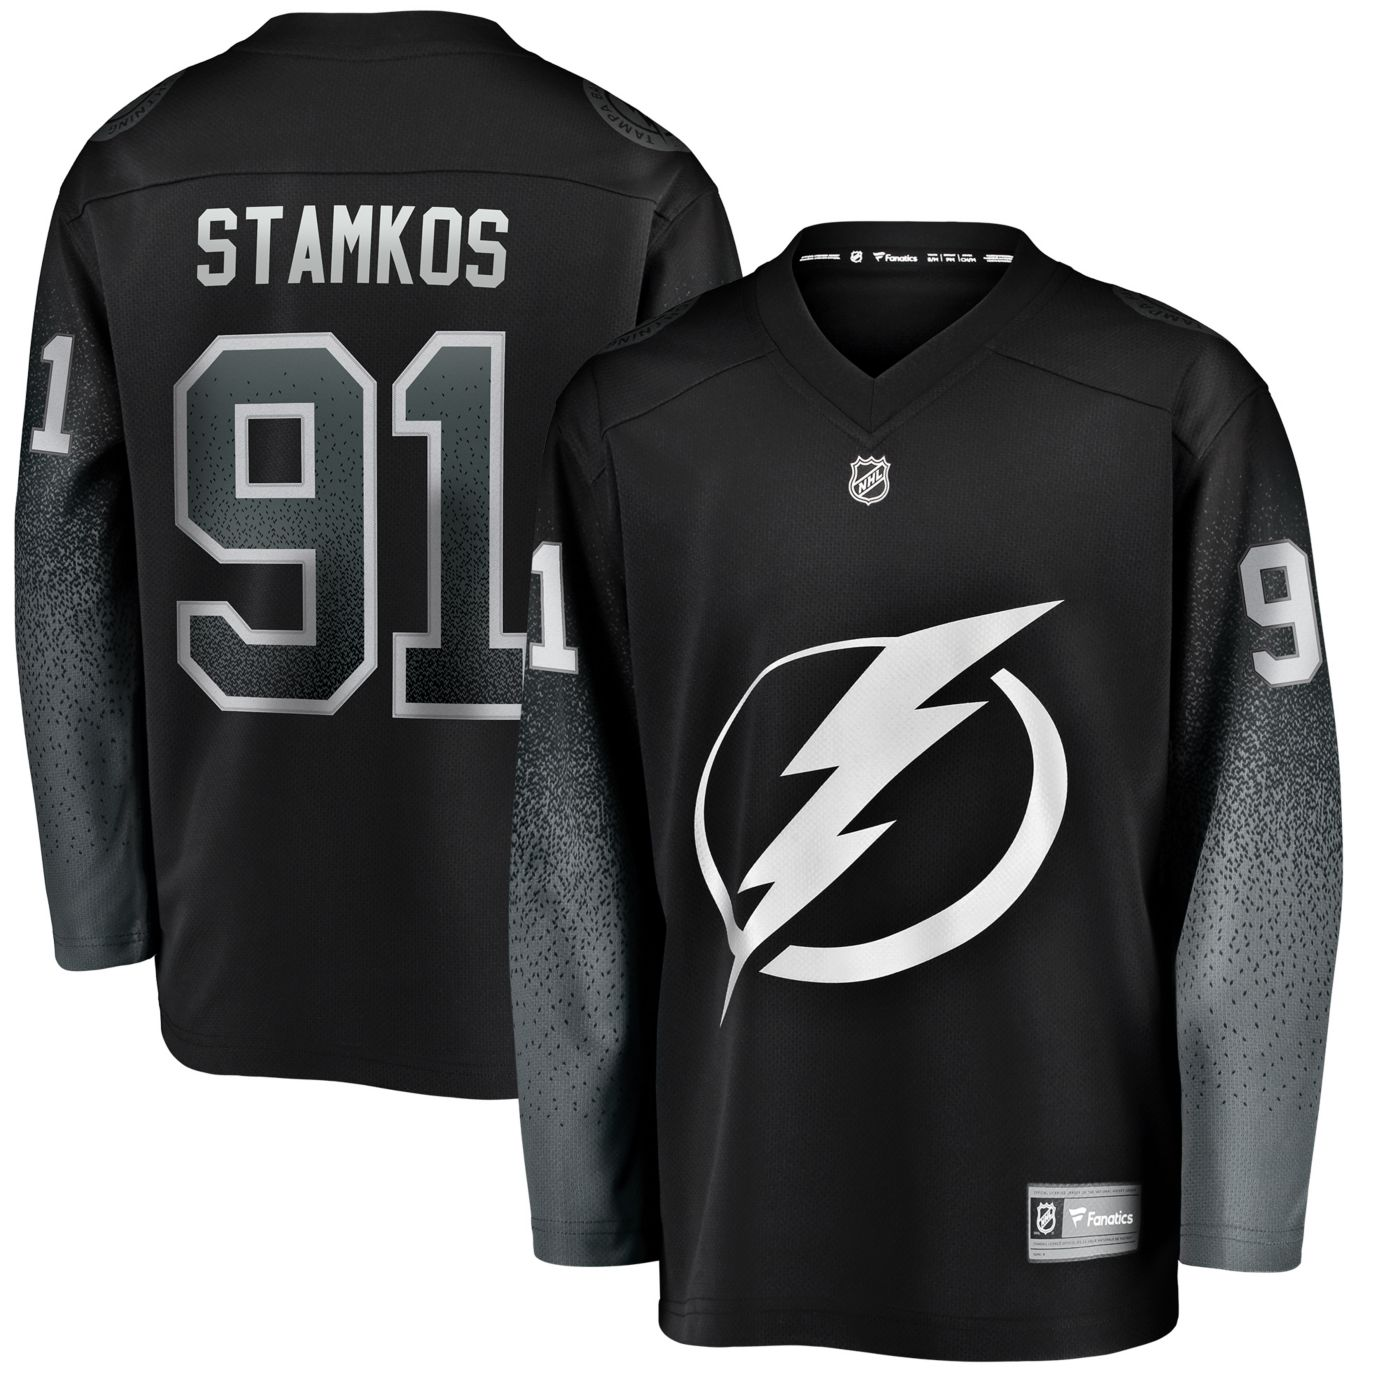 NHL Men's Tampa Bay Lightning Steven Stamkos #91 Breakaway Alternate Replica Jersey